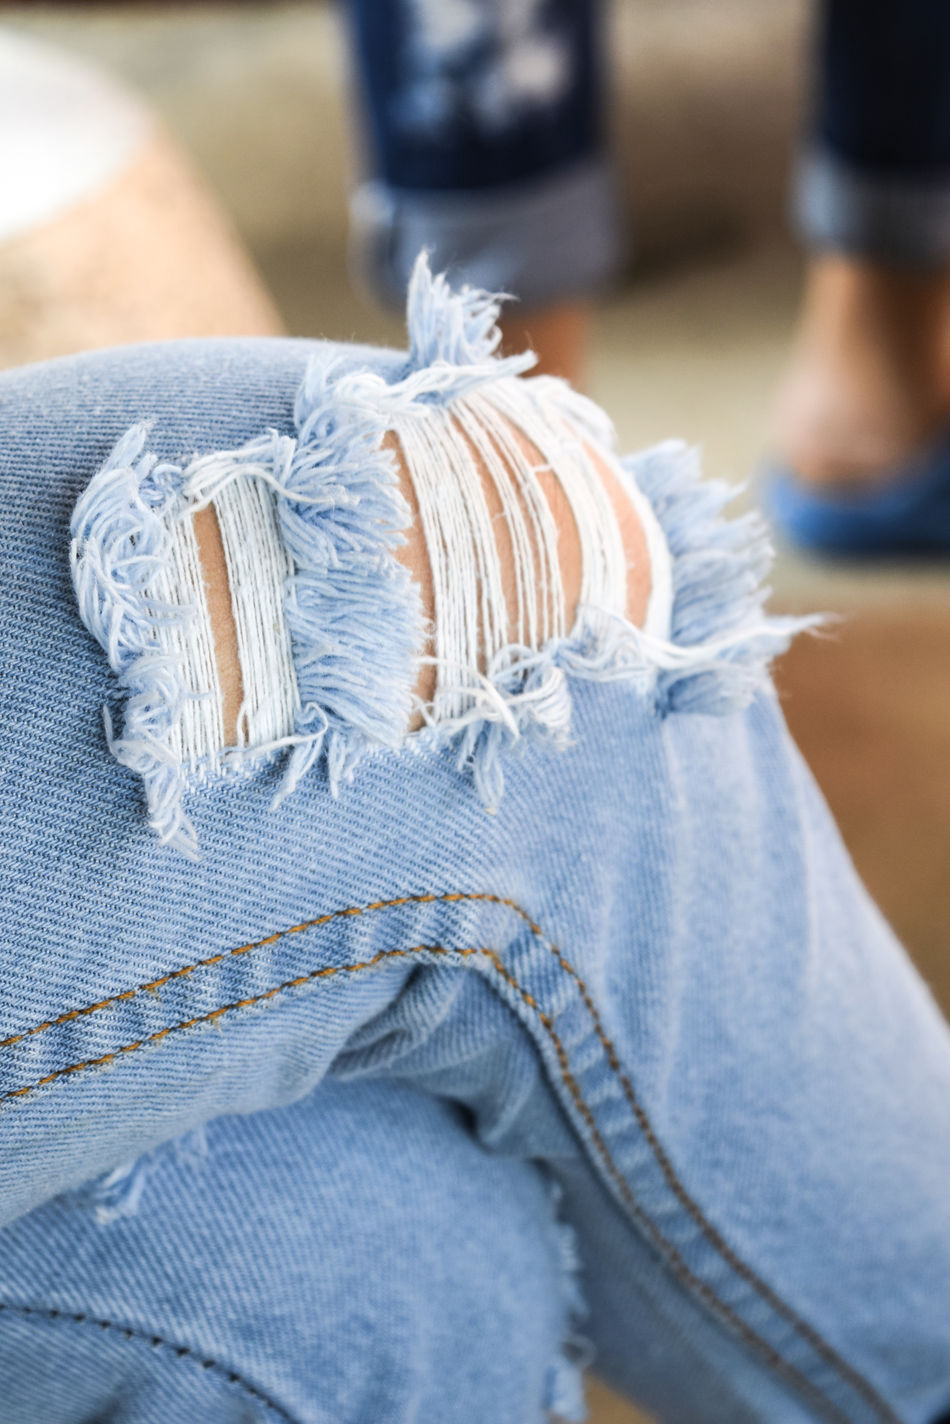 Blue Casual Clothing Close-up Day Fashion Indoors  Jeans No People Textile